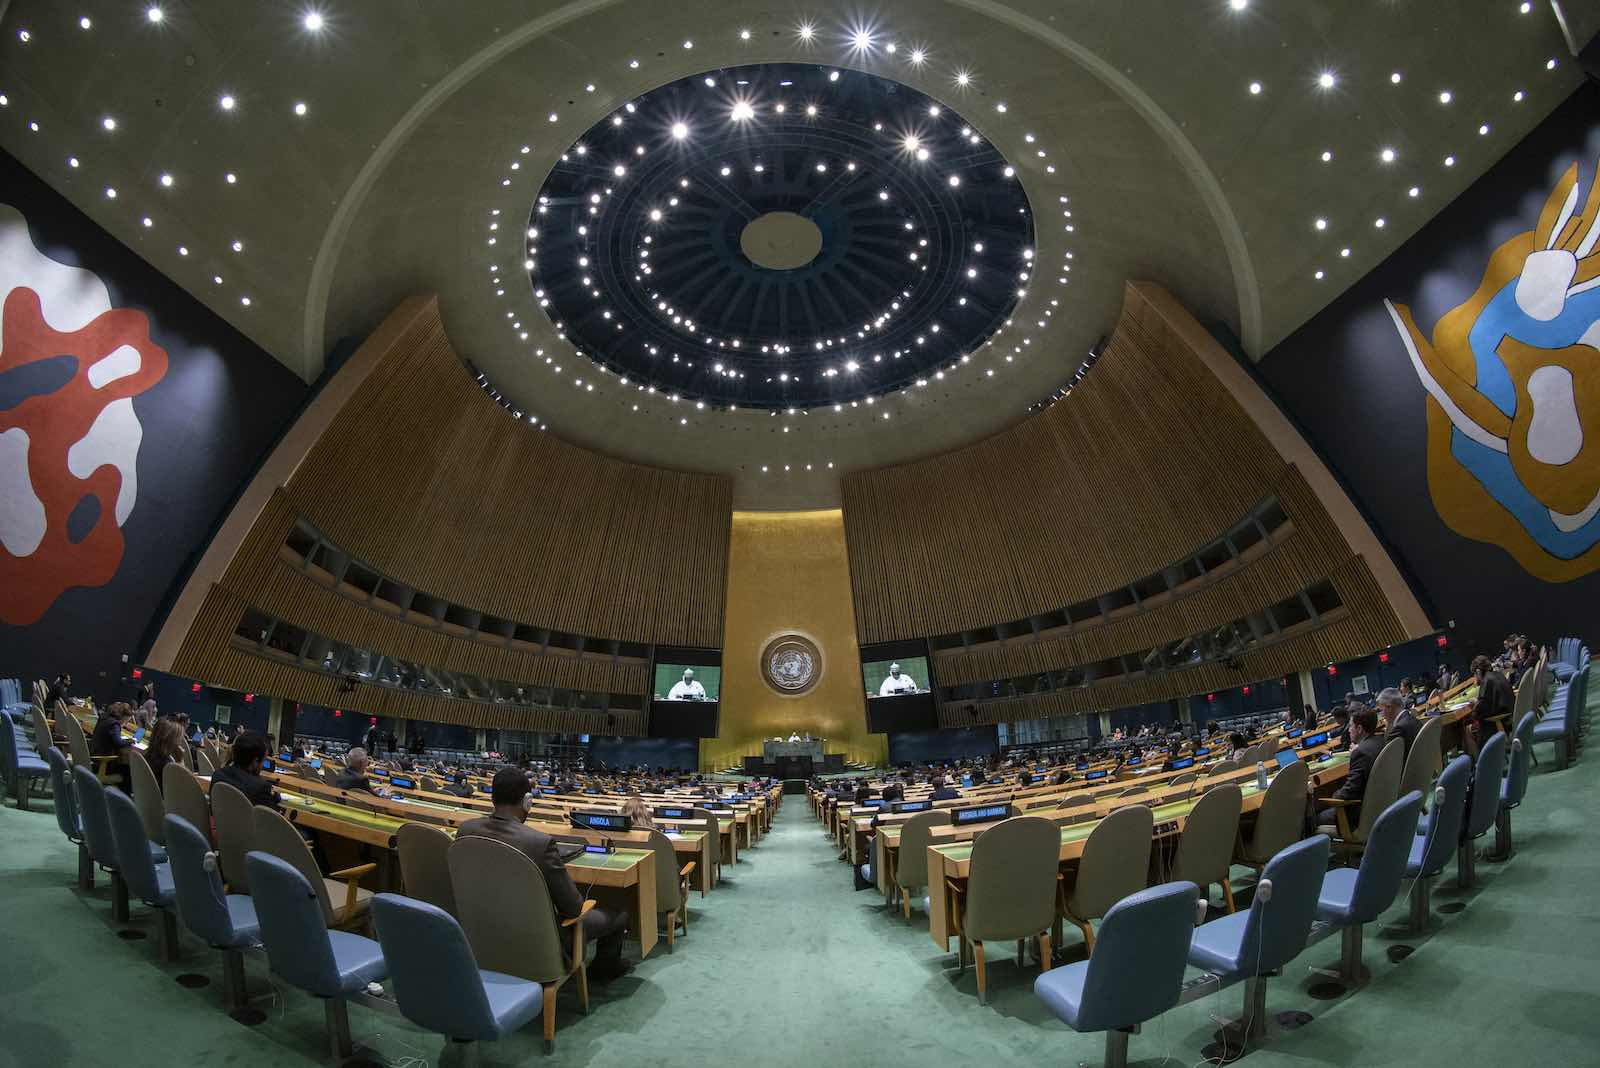 UN General Assembly, New York (Cia Pak/UN Photo)